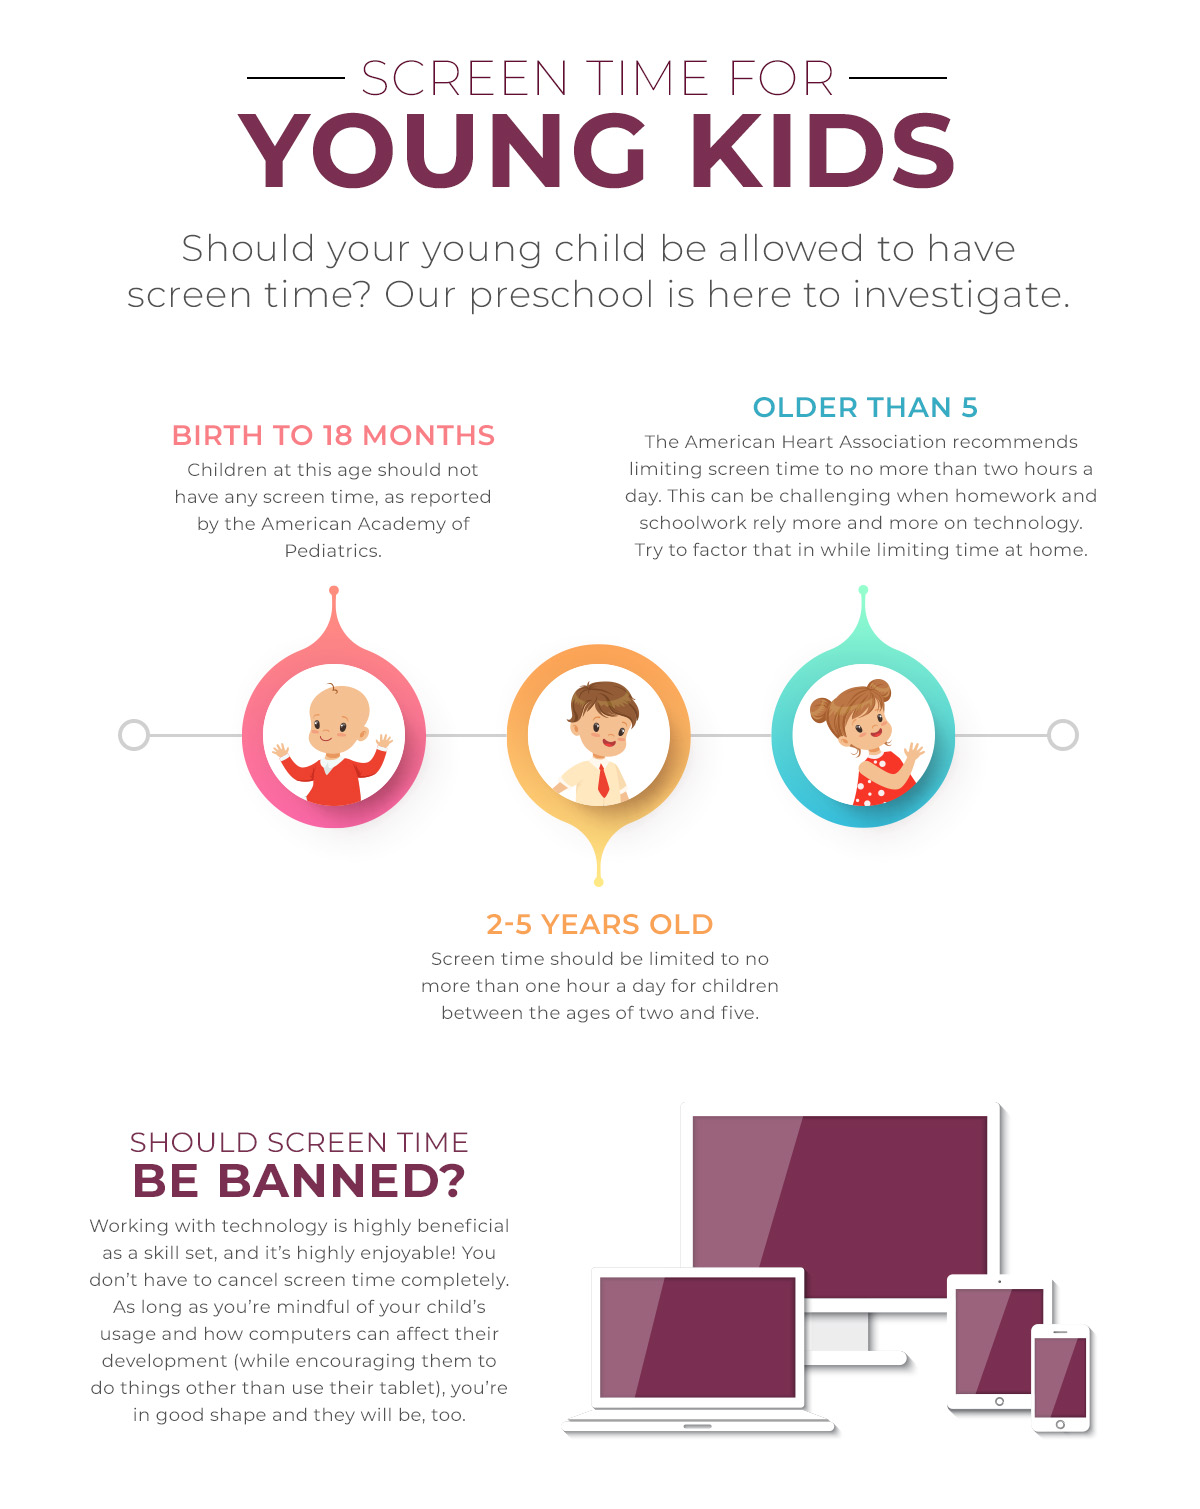 Why Is Screentime Bad For Young Children >> Preschool San Jose Should Young Kids Have Screen Time East